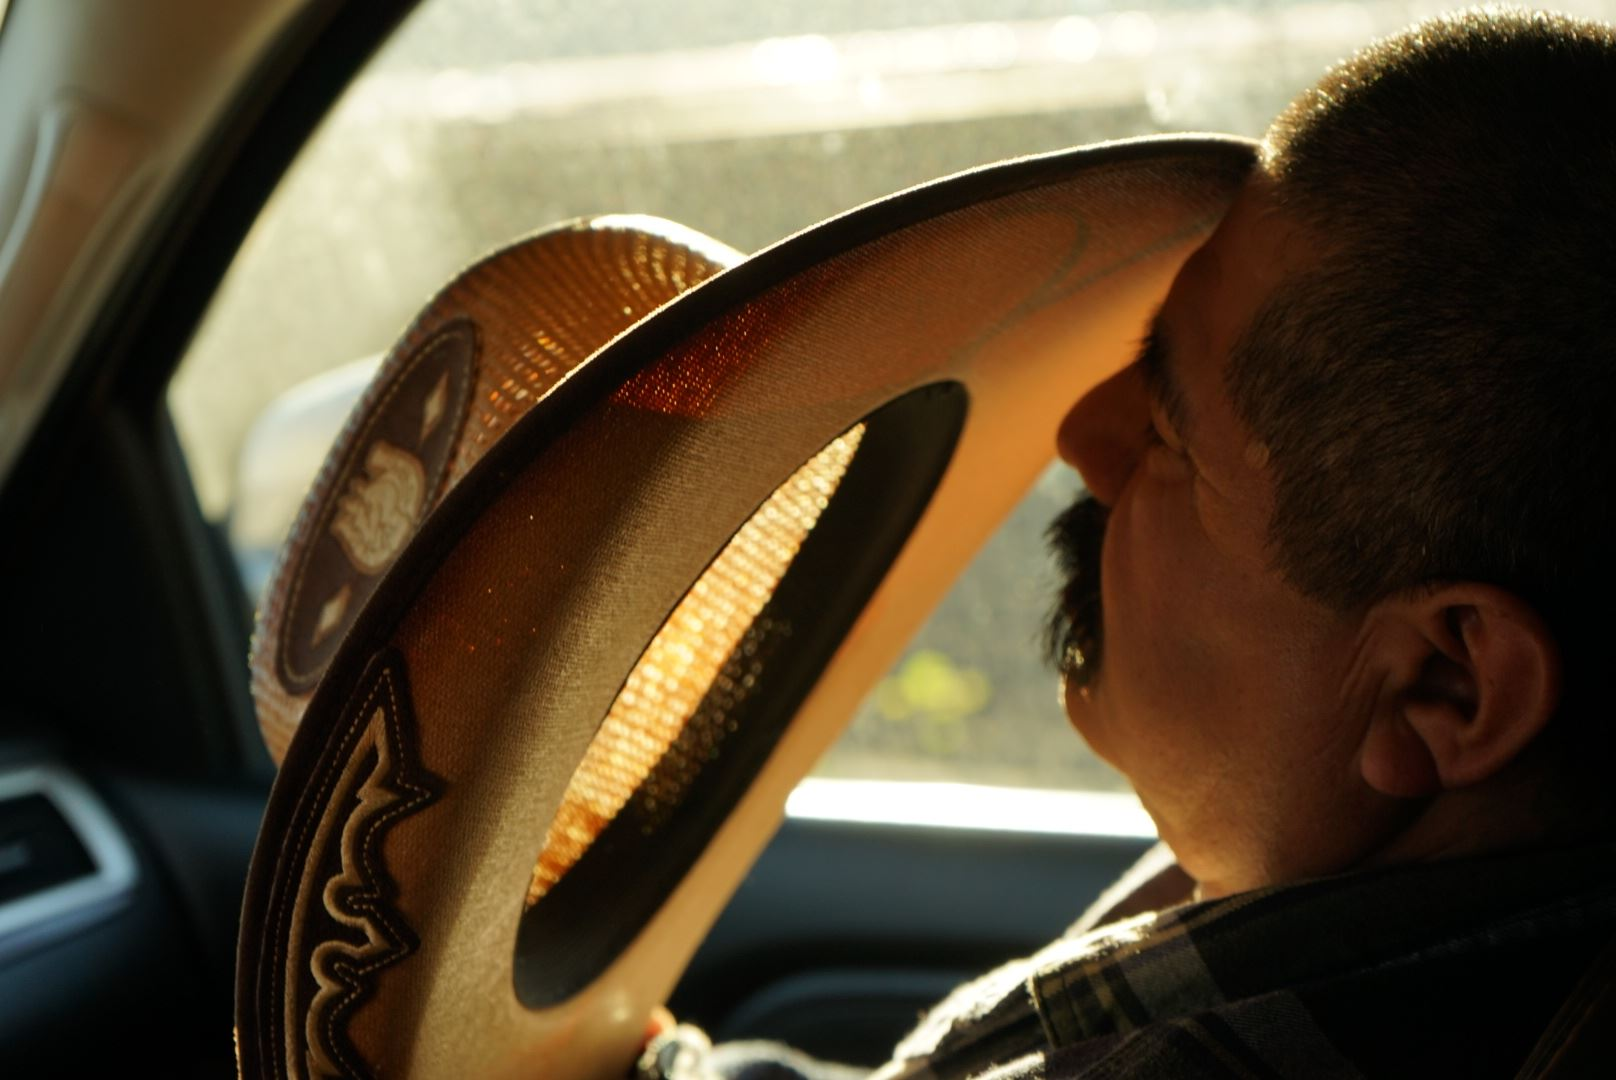 photograph of a man asleep in a car with his hat resting against his forehead